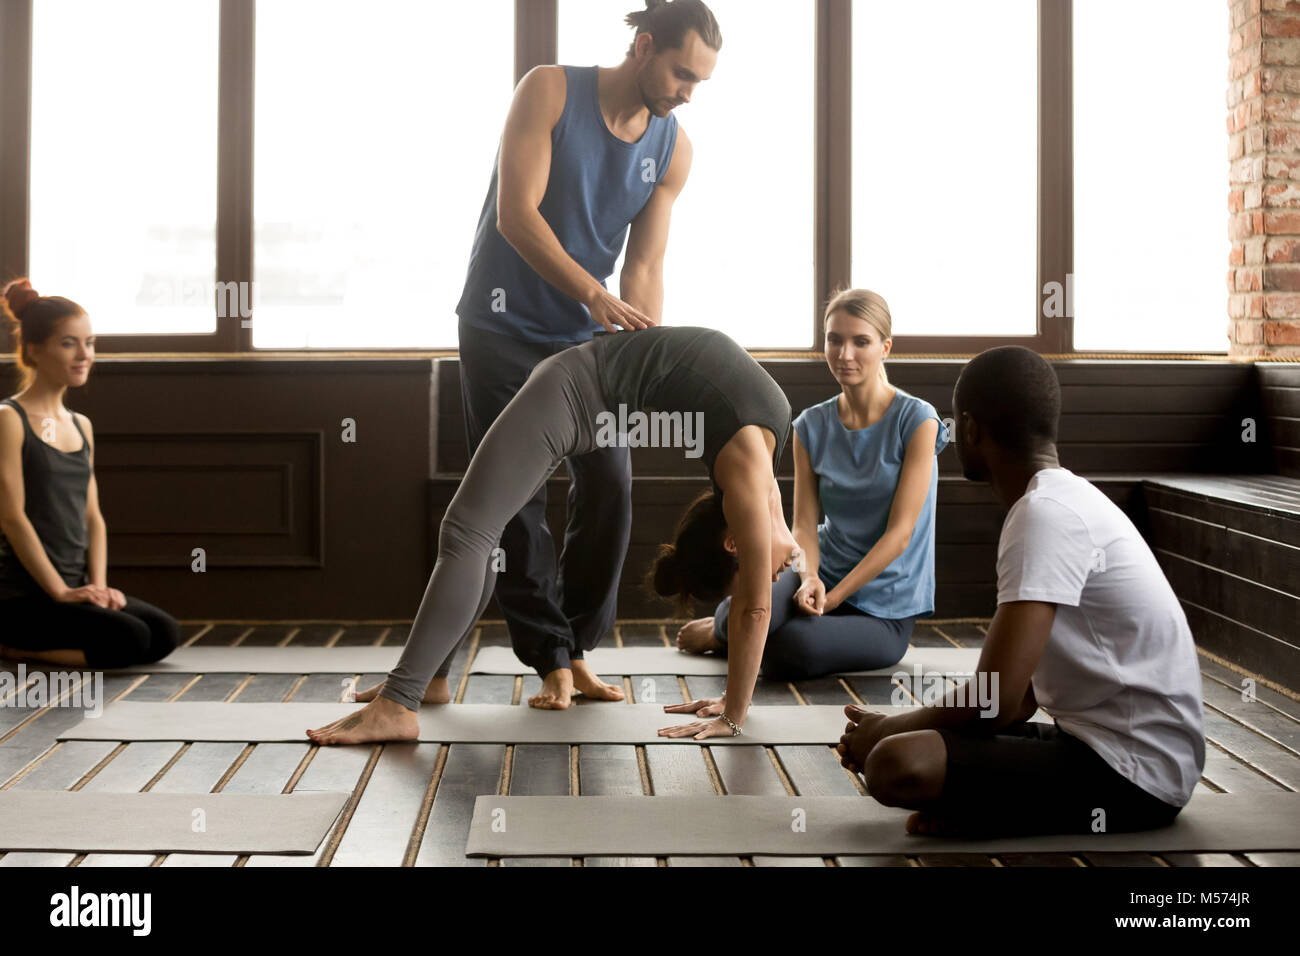 Male teacher assisting woman doing yoga bridge exercise on mat - Stock Image